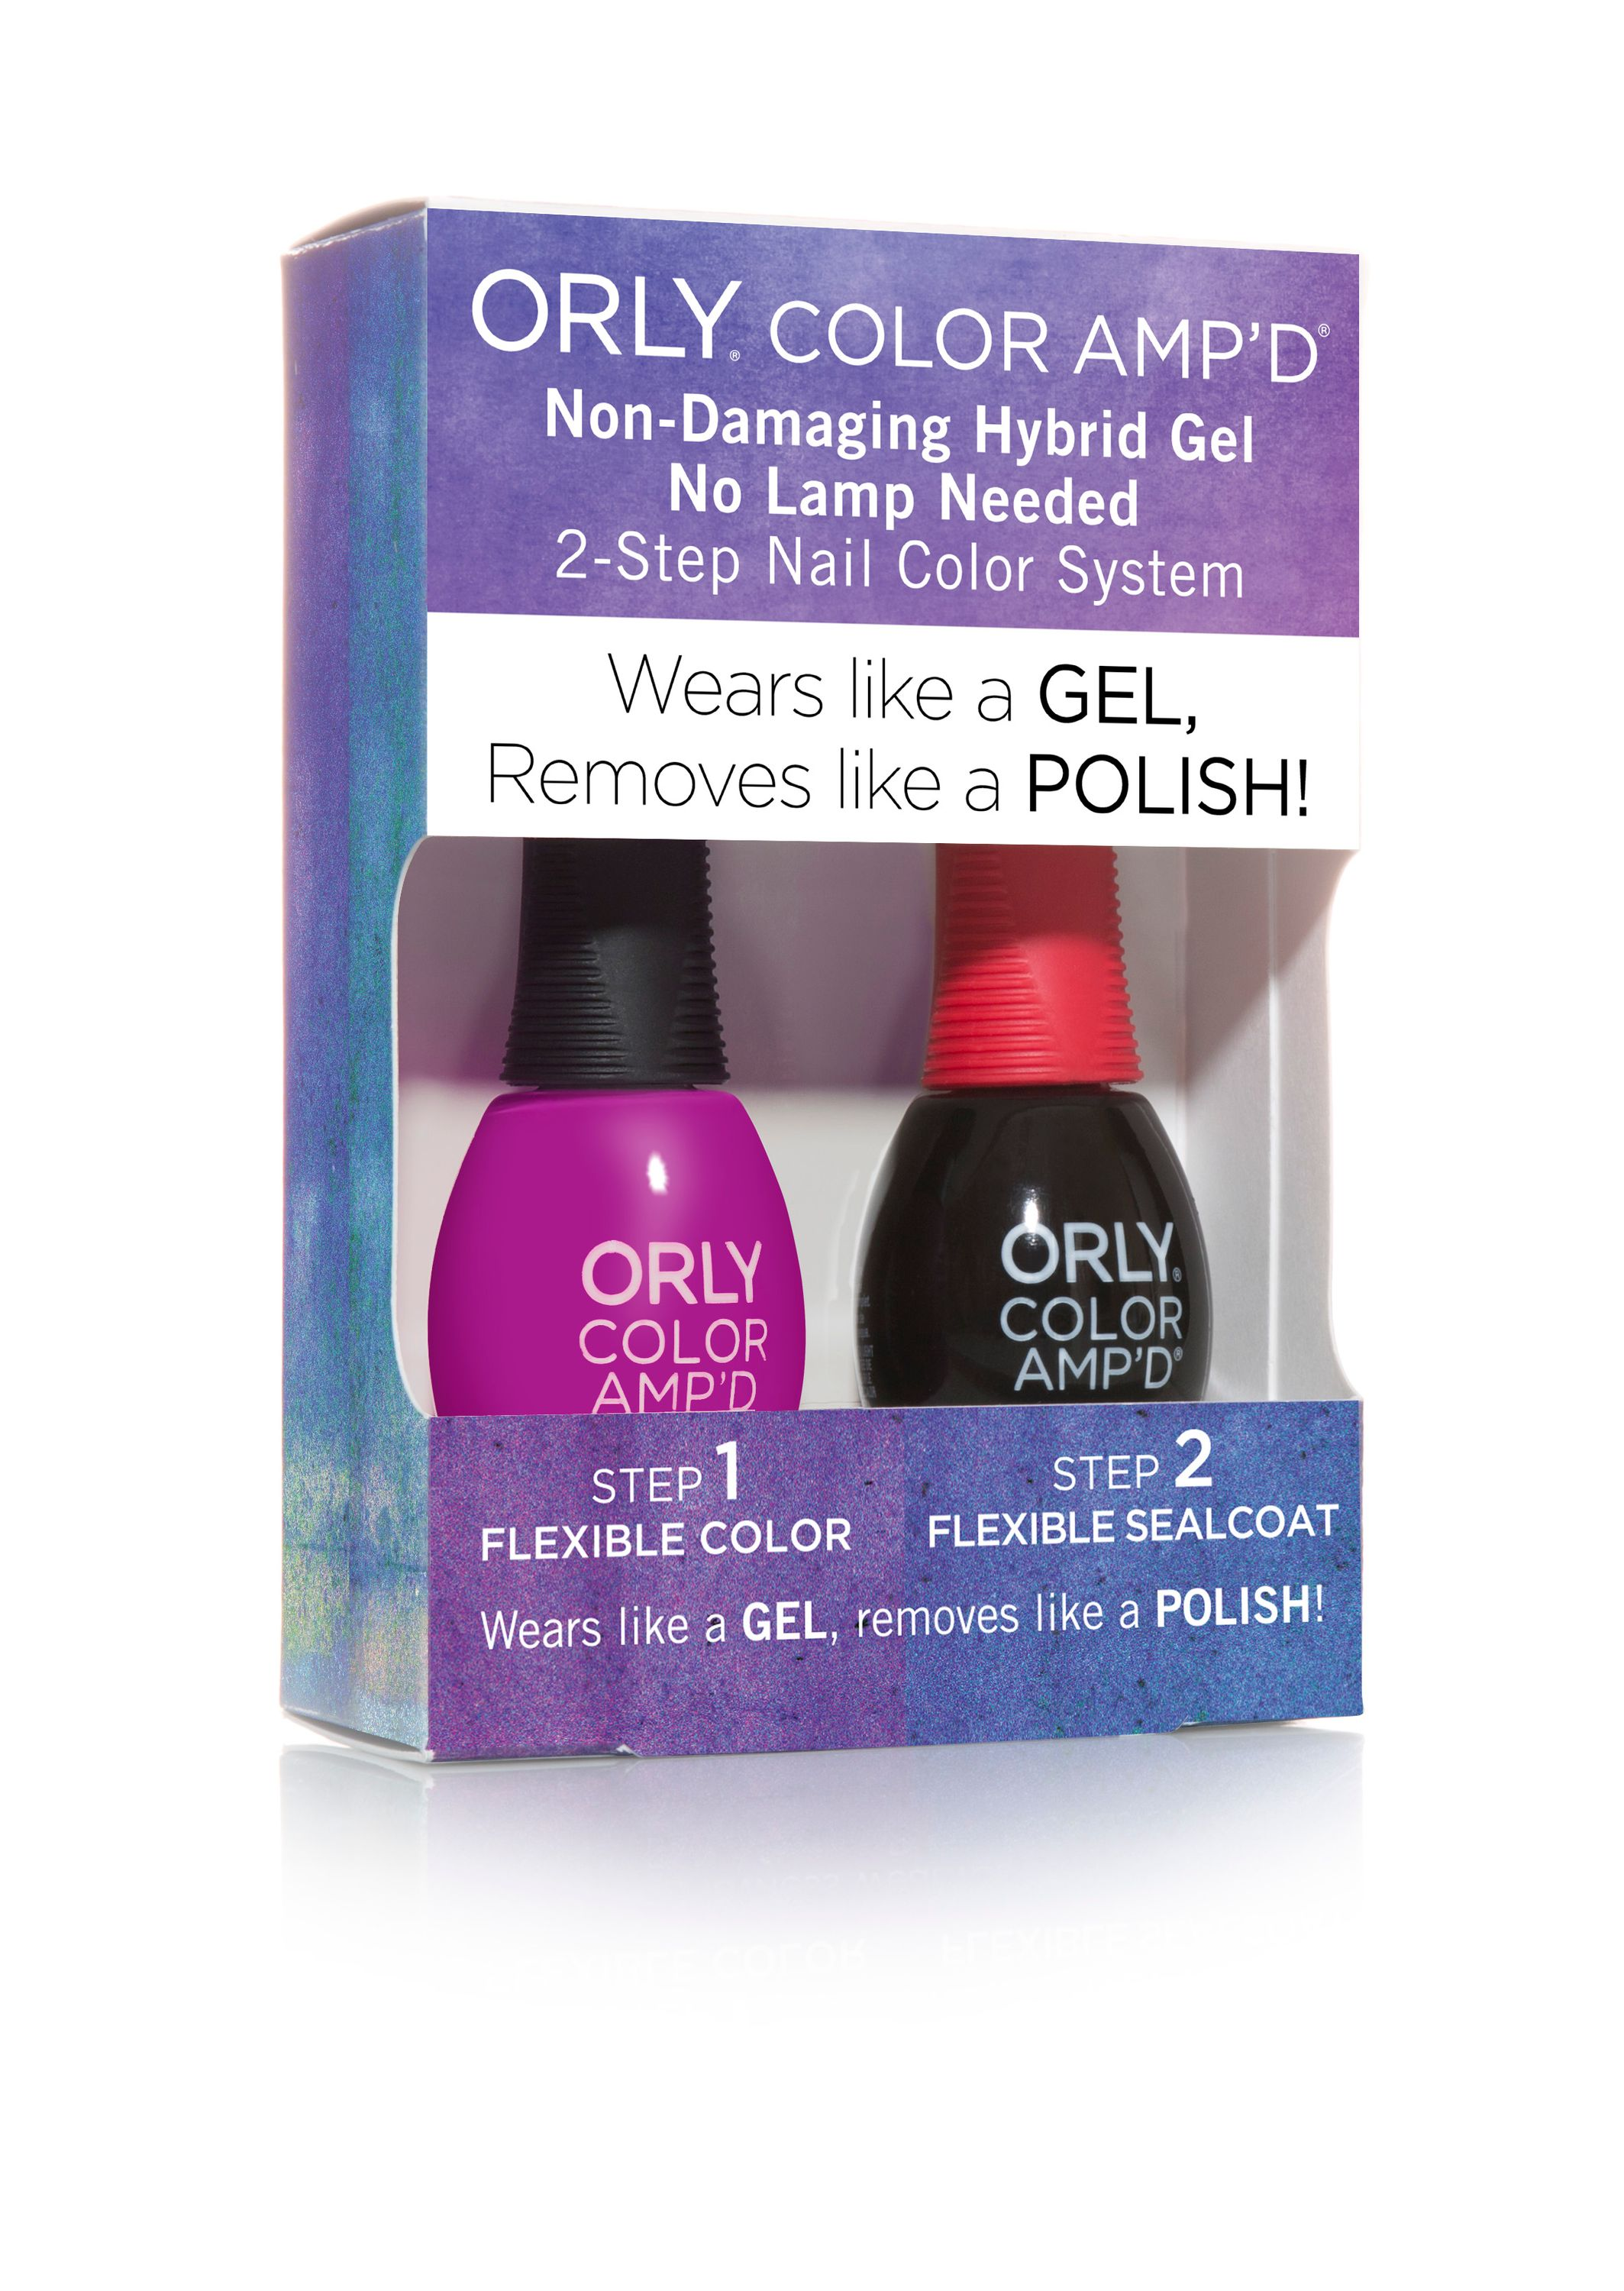 ORLY Color Amp'D Kit On The List